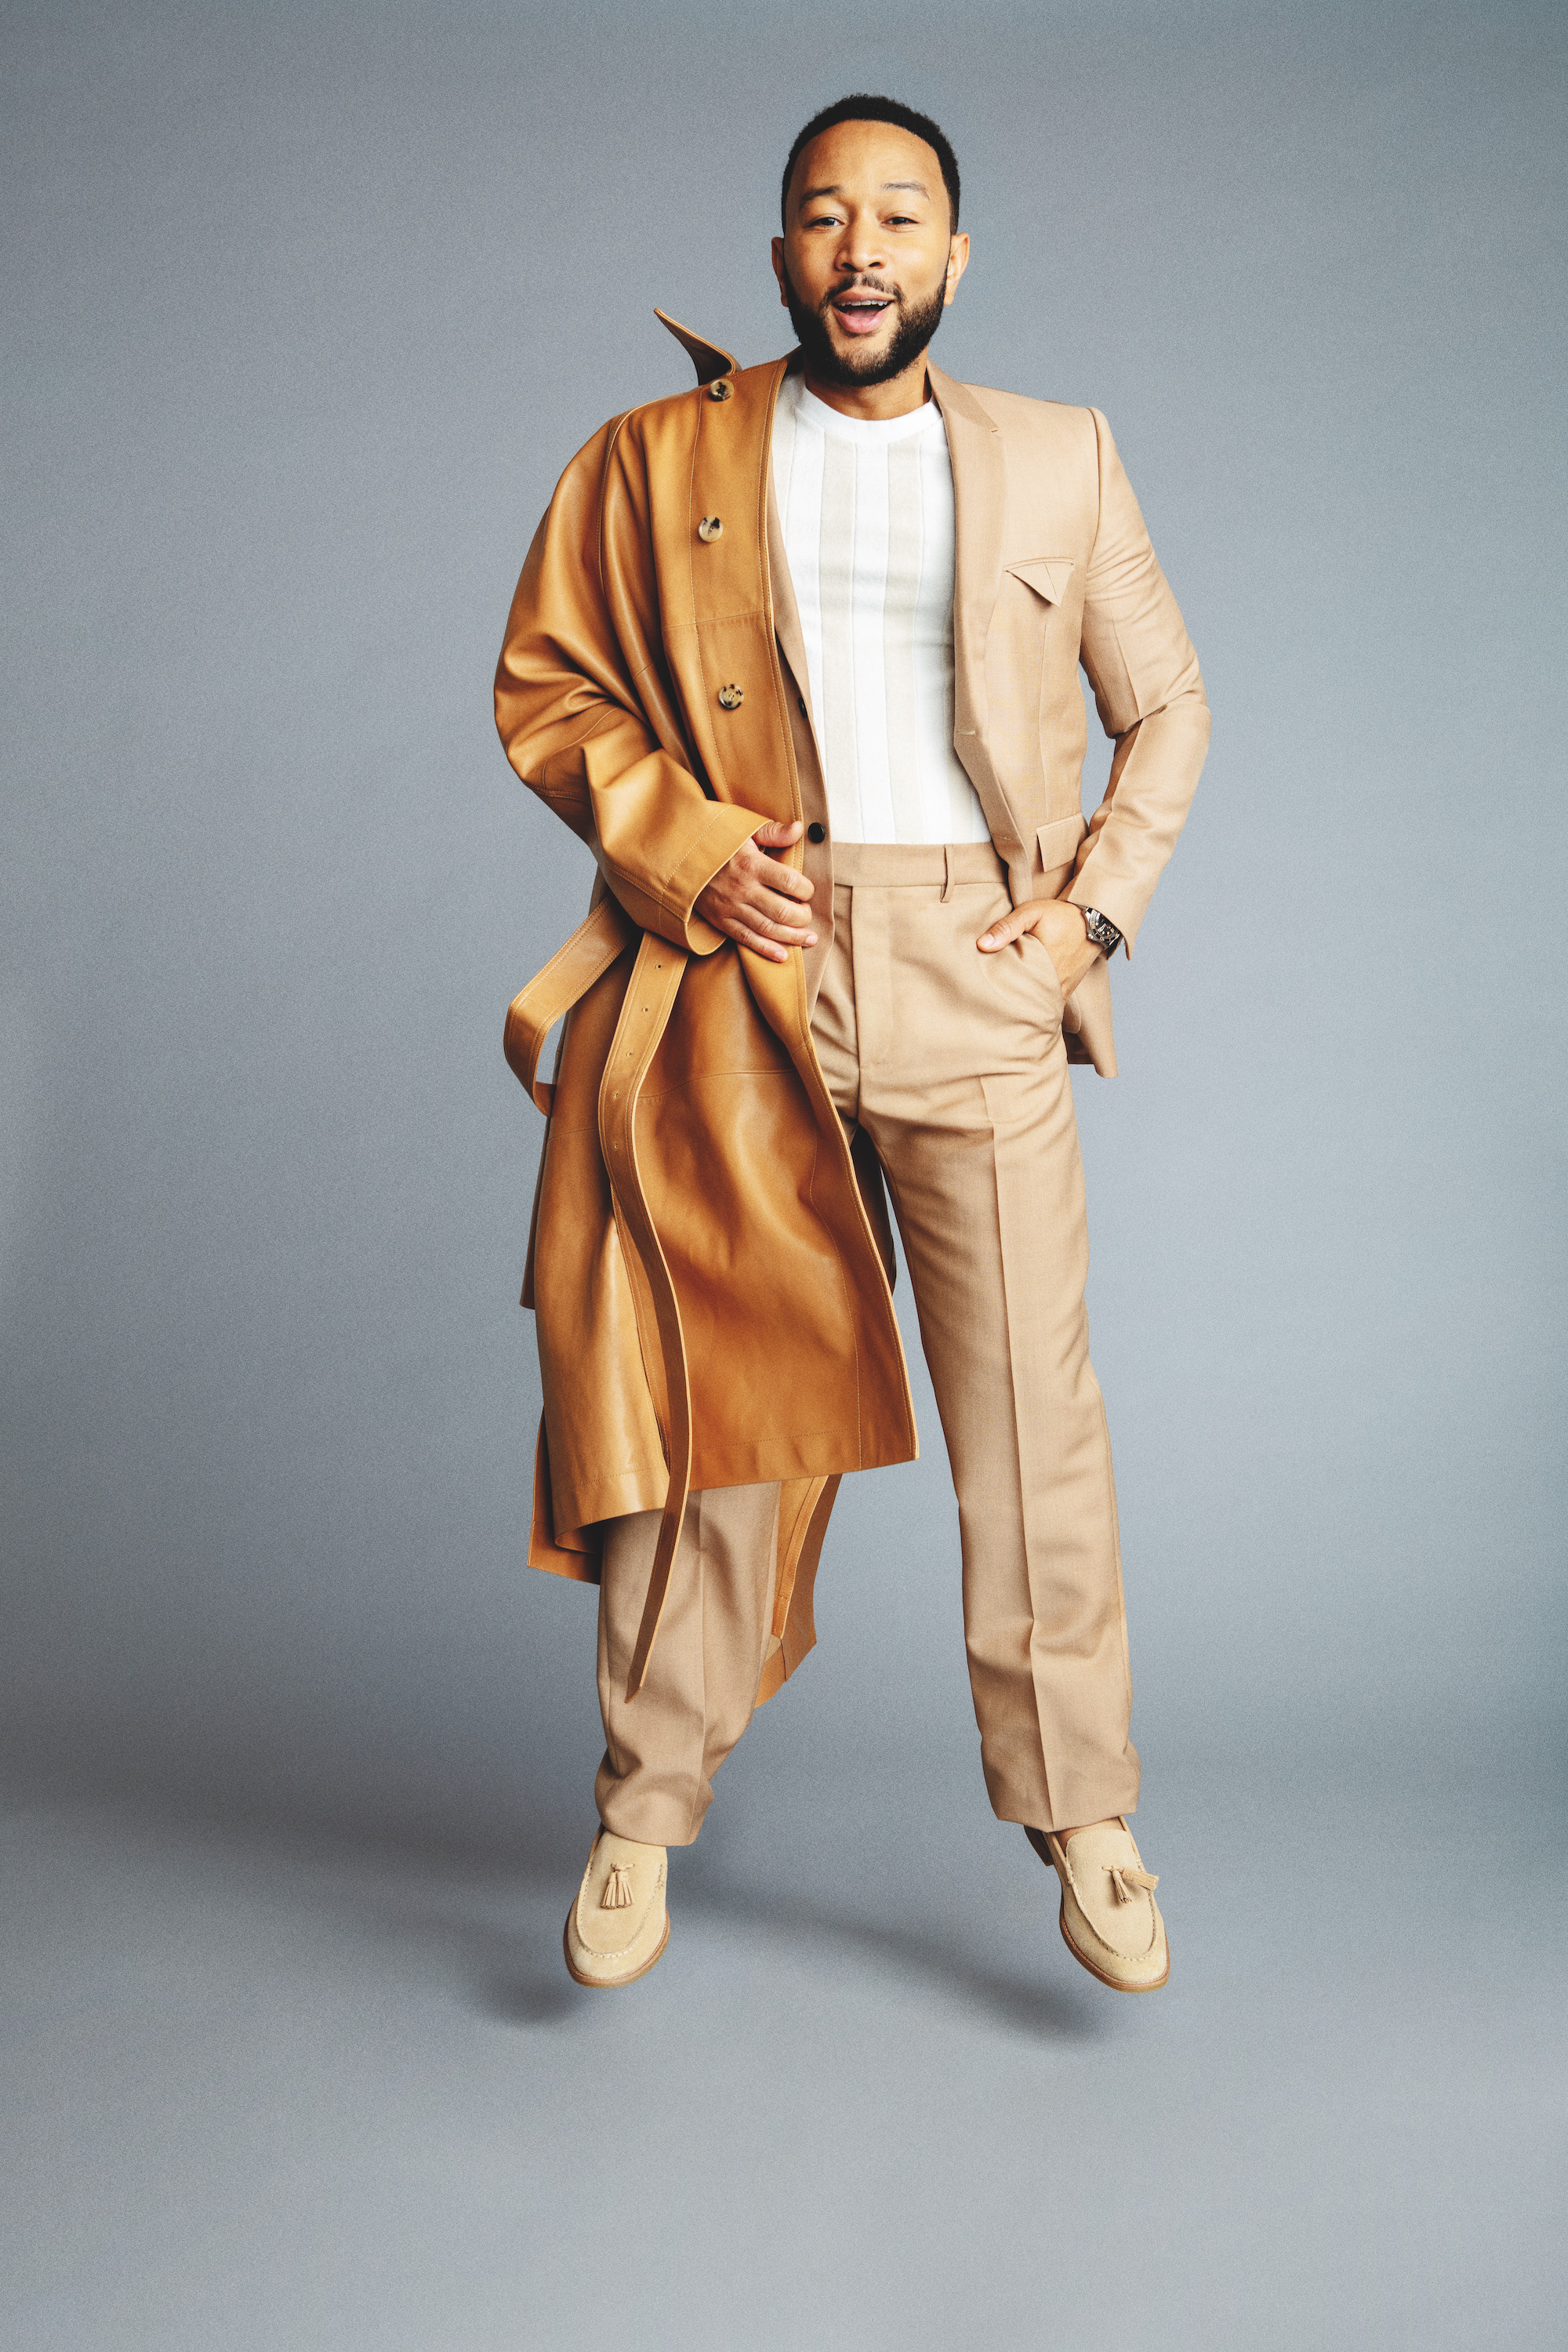 John Legend for Rollacoaster in beige coat jumping in white shirt